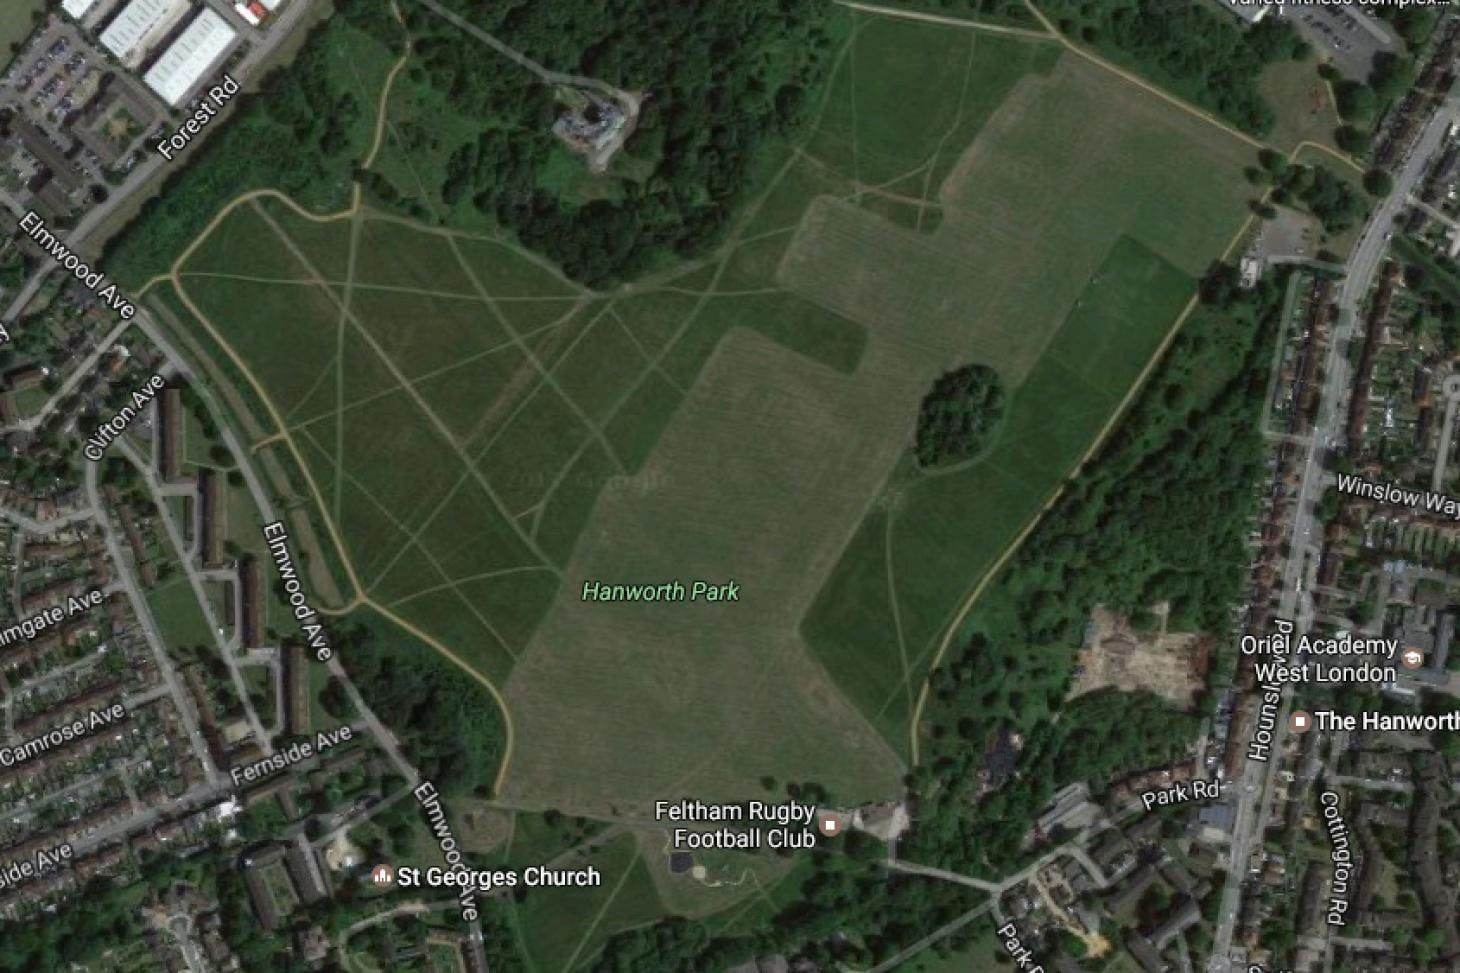 Hanworth Park Union rugby pitch